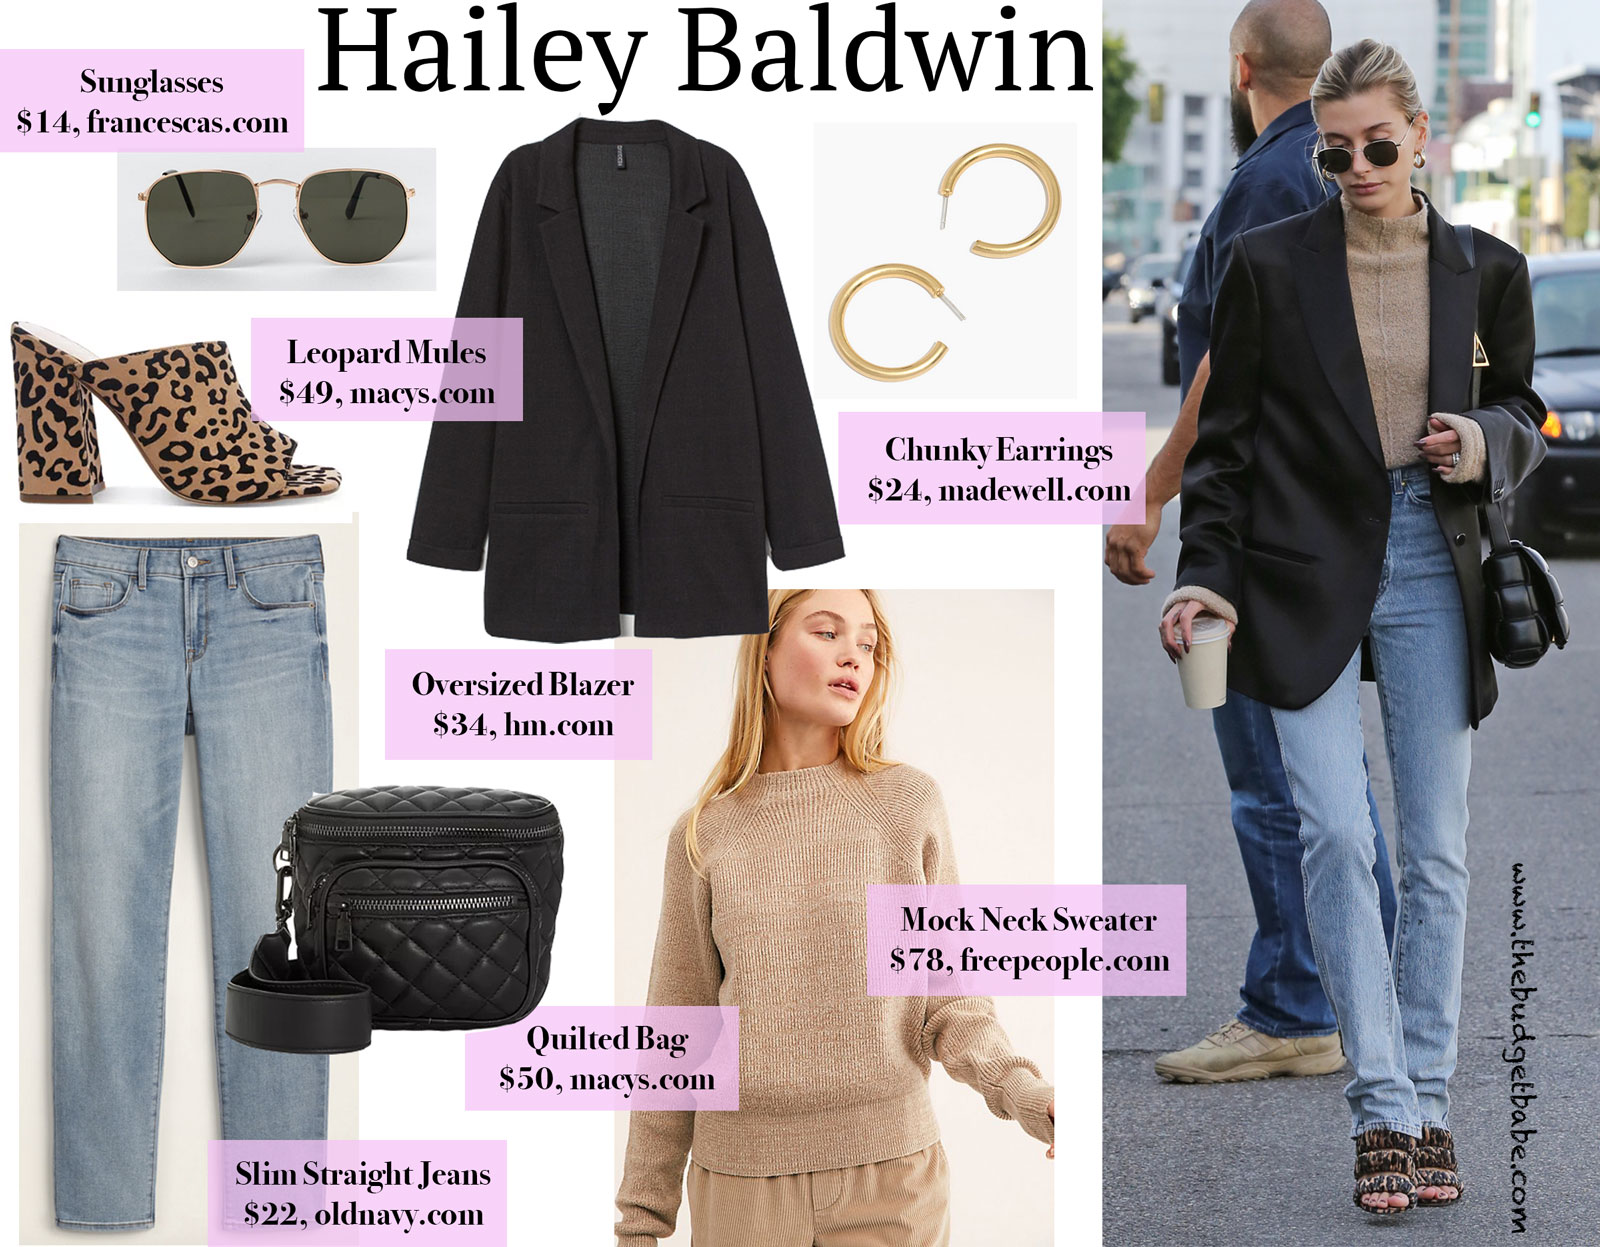 Hailey Baldwin Leopard Sandals and Tan Sweater Look for Less